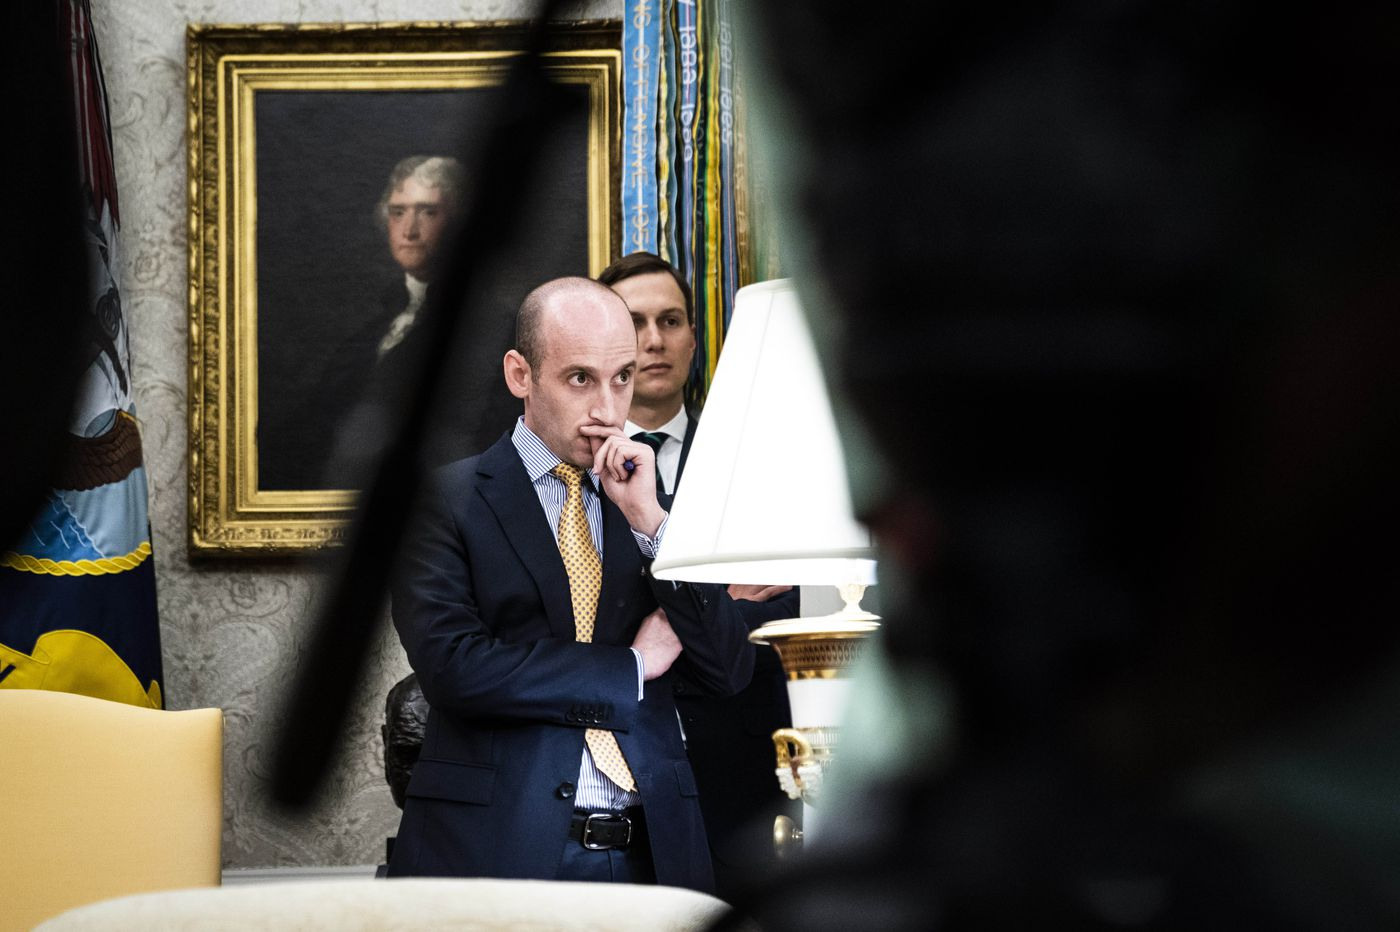 Stephen Miller has singular control of migration policy